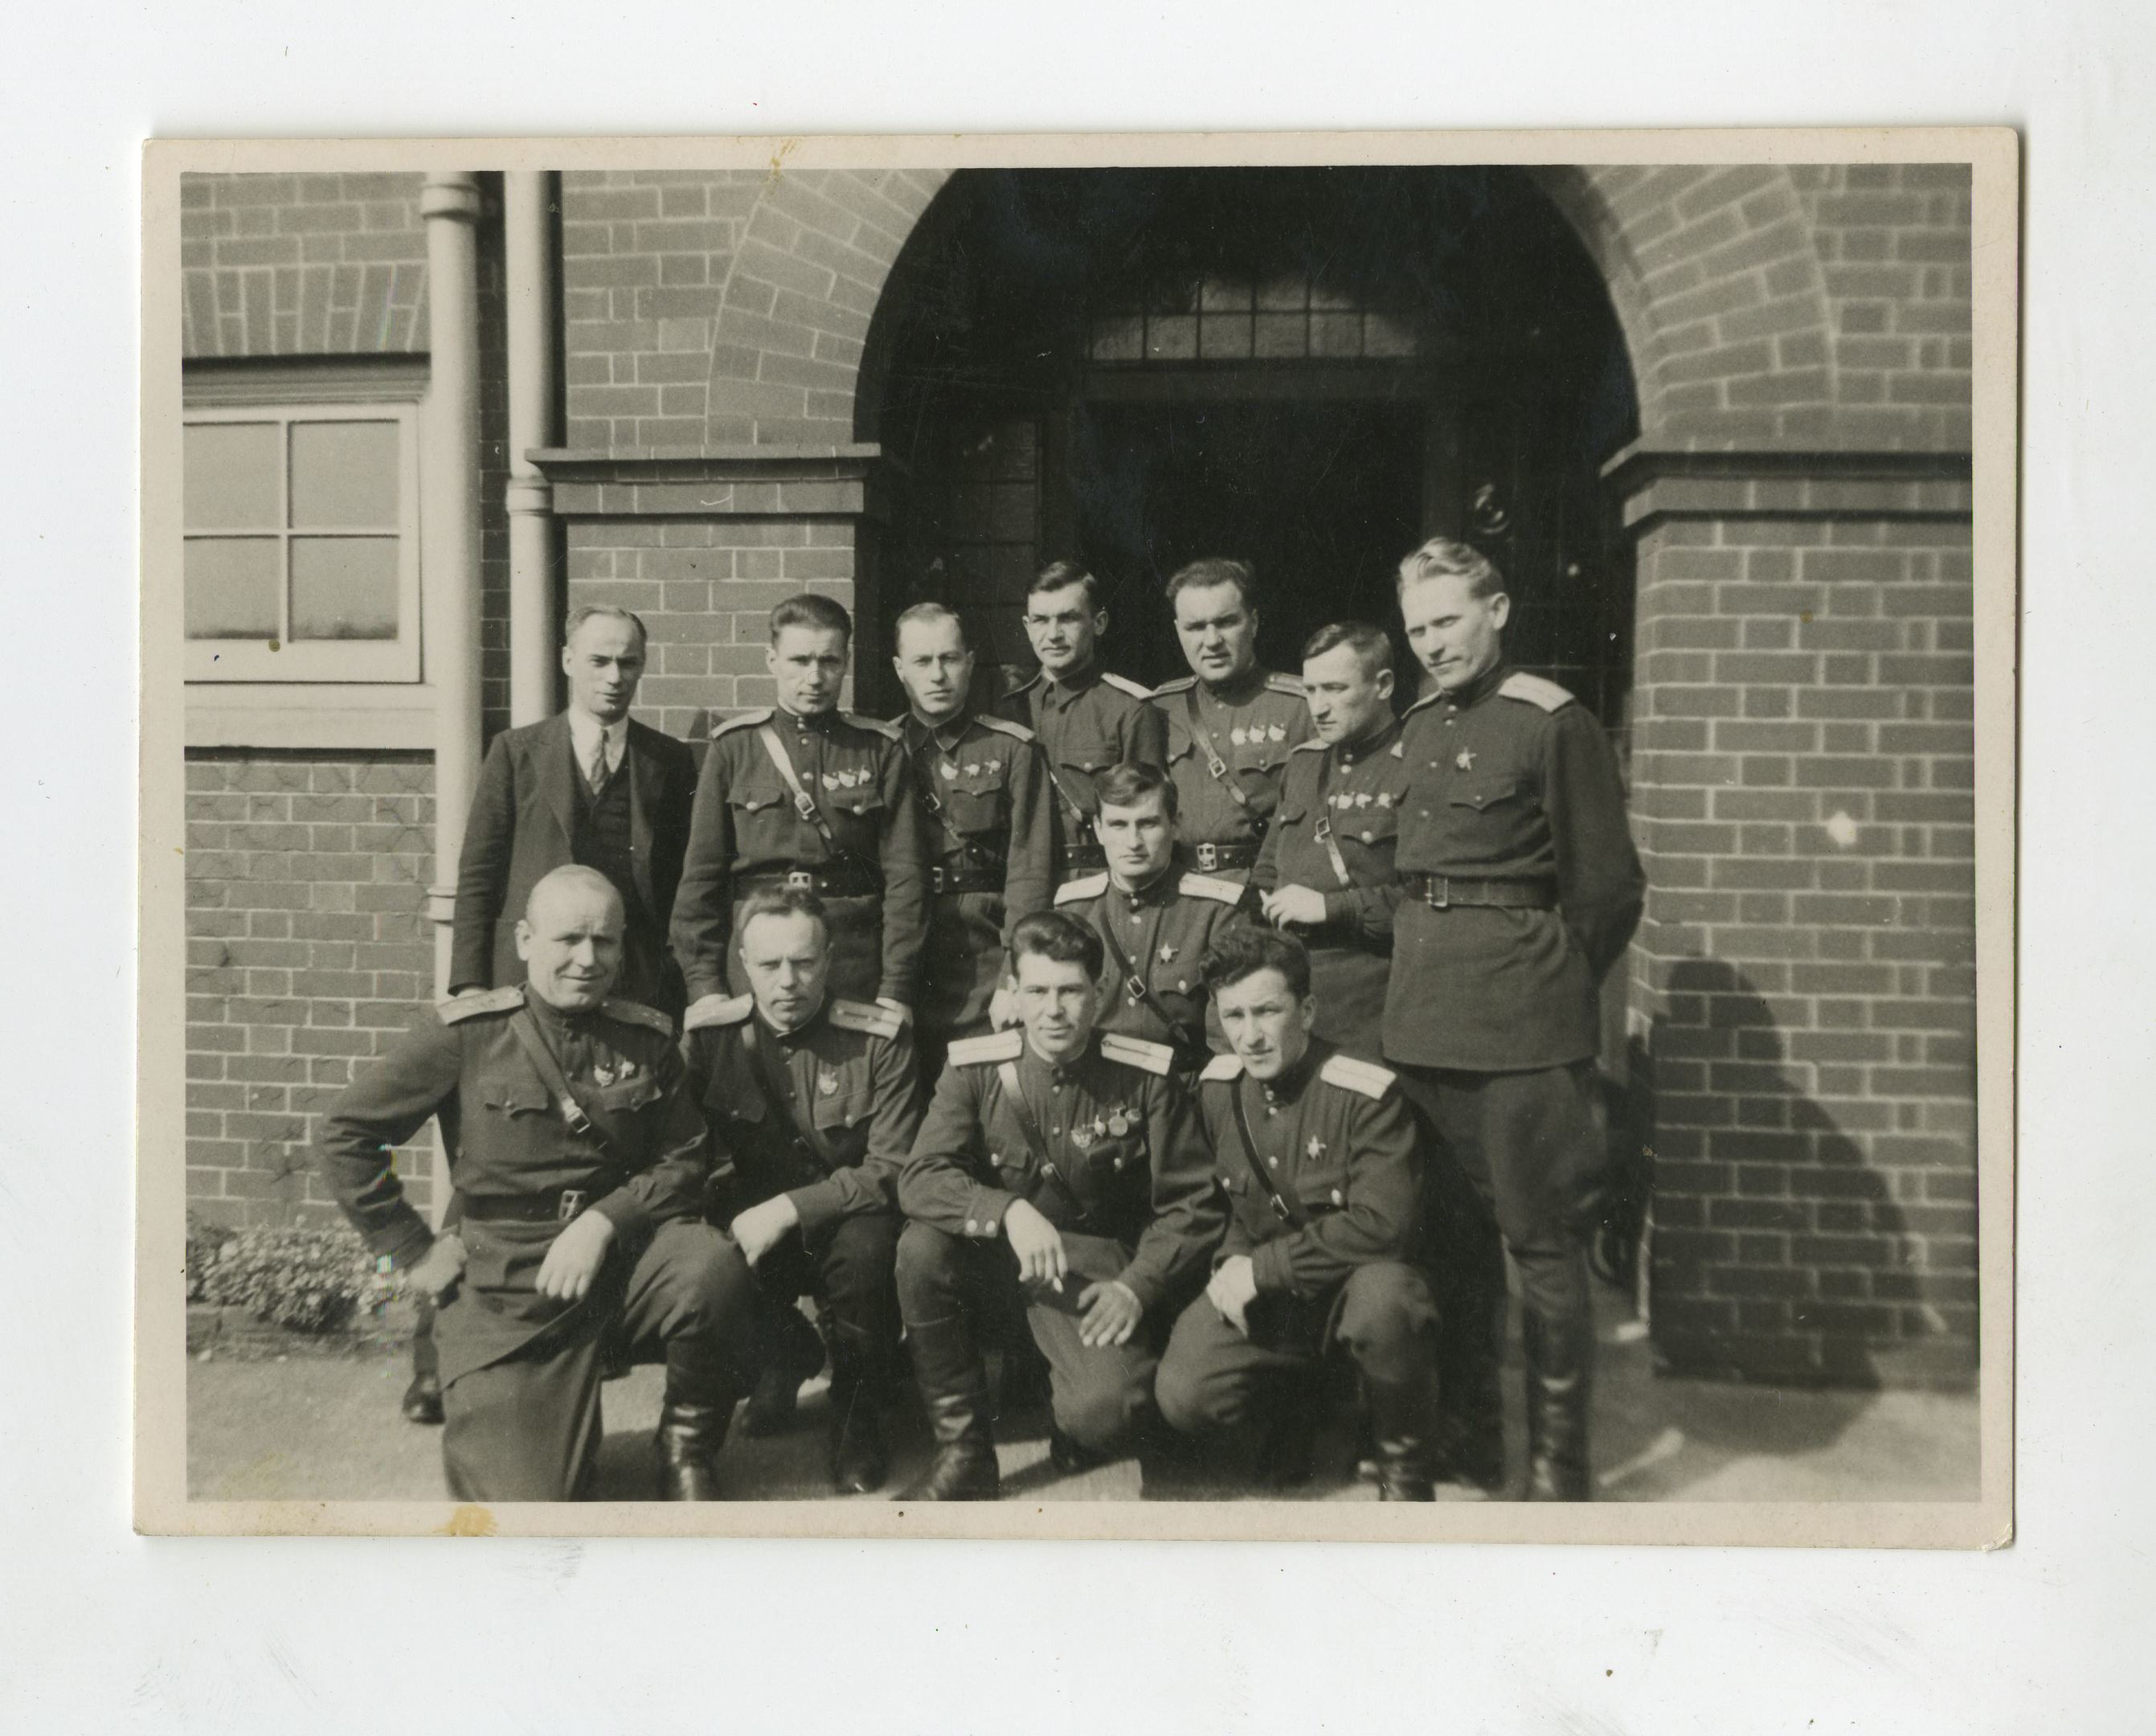 A few of the Soviet airmen who arrived in Scotland in 1943 to undertake top secret training at Errol Airfield, including Commander Peter Kolesnikov (1st row, left)